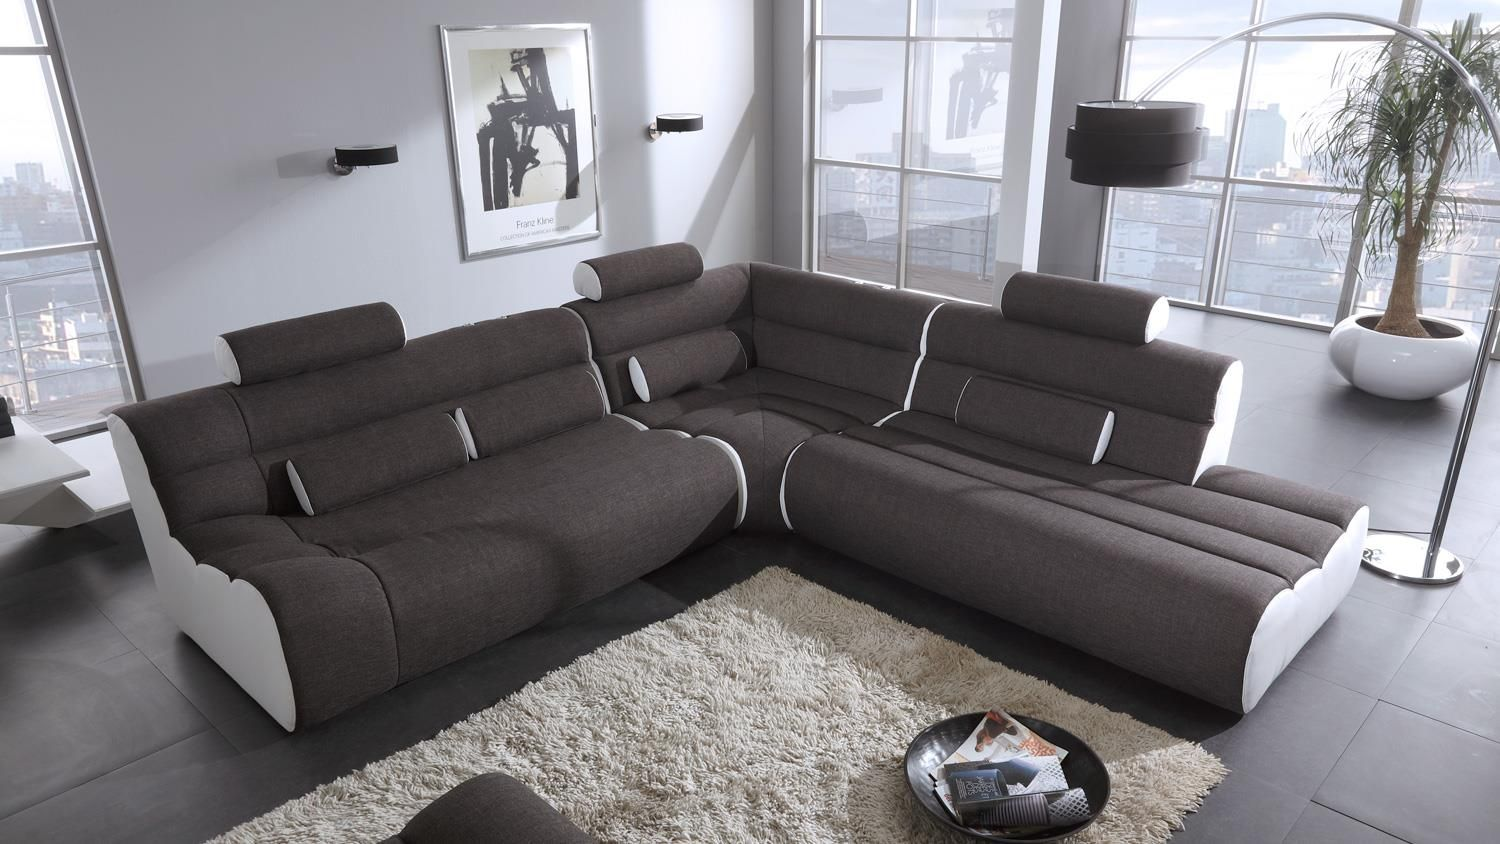 Wunderbar Amazing Finest Ecksofa Elements Eckgarnitur Lform Wei Grau X Cm With  Eckcouch L Form With Kche L Form Wei